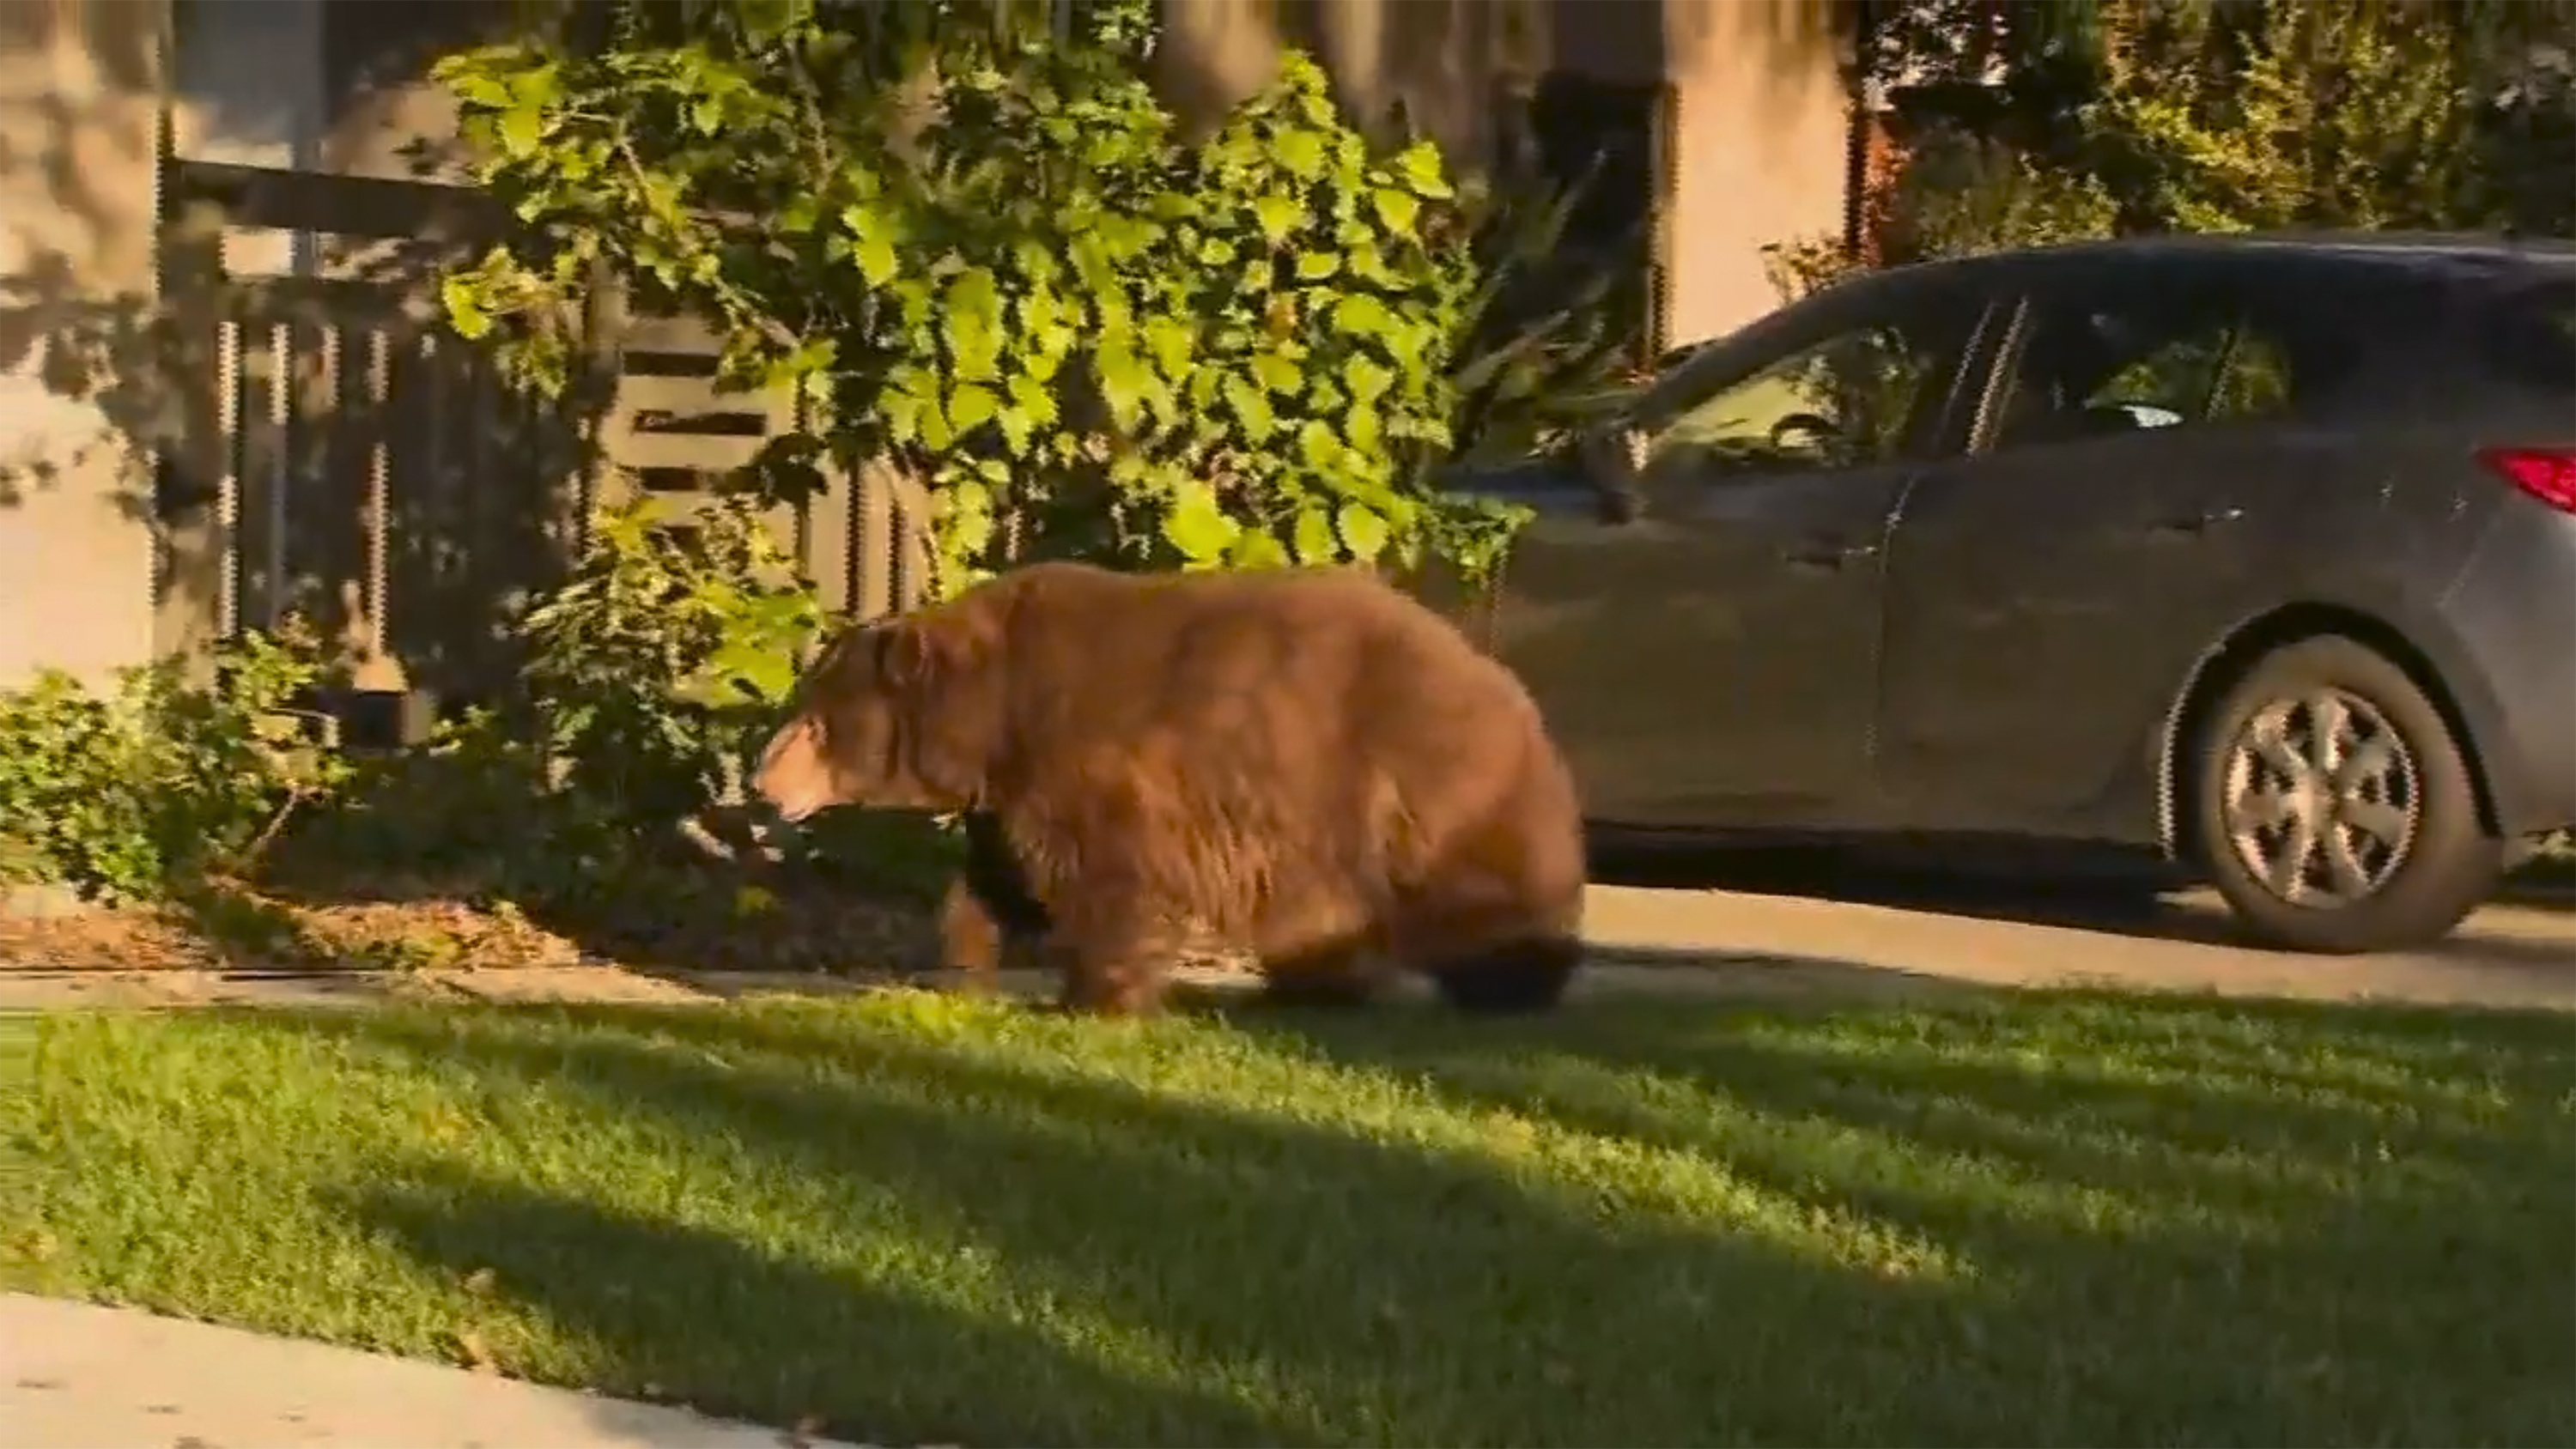 This image provided by KTTV FOX 11 shows a bear walking on the front yard of a home in Monrovia, Calif., on Feb. 21, 2020.